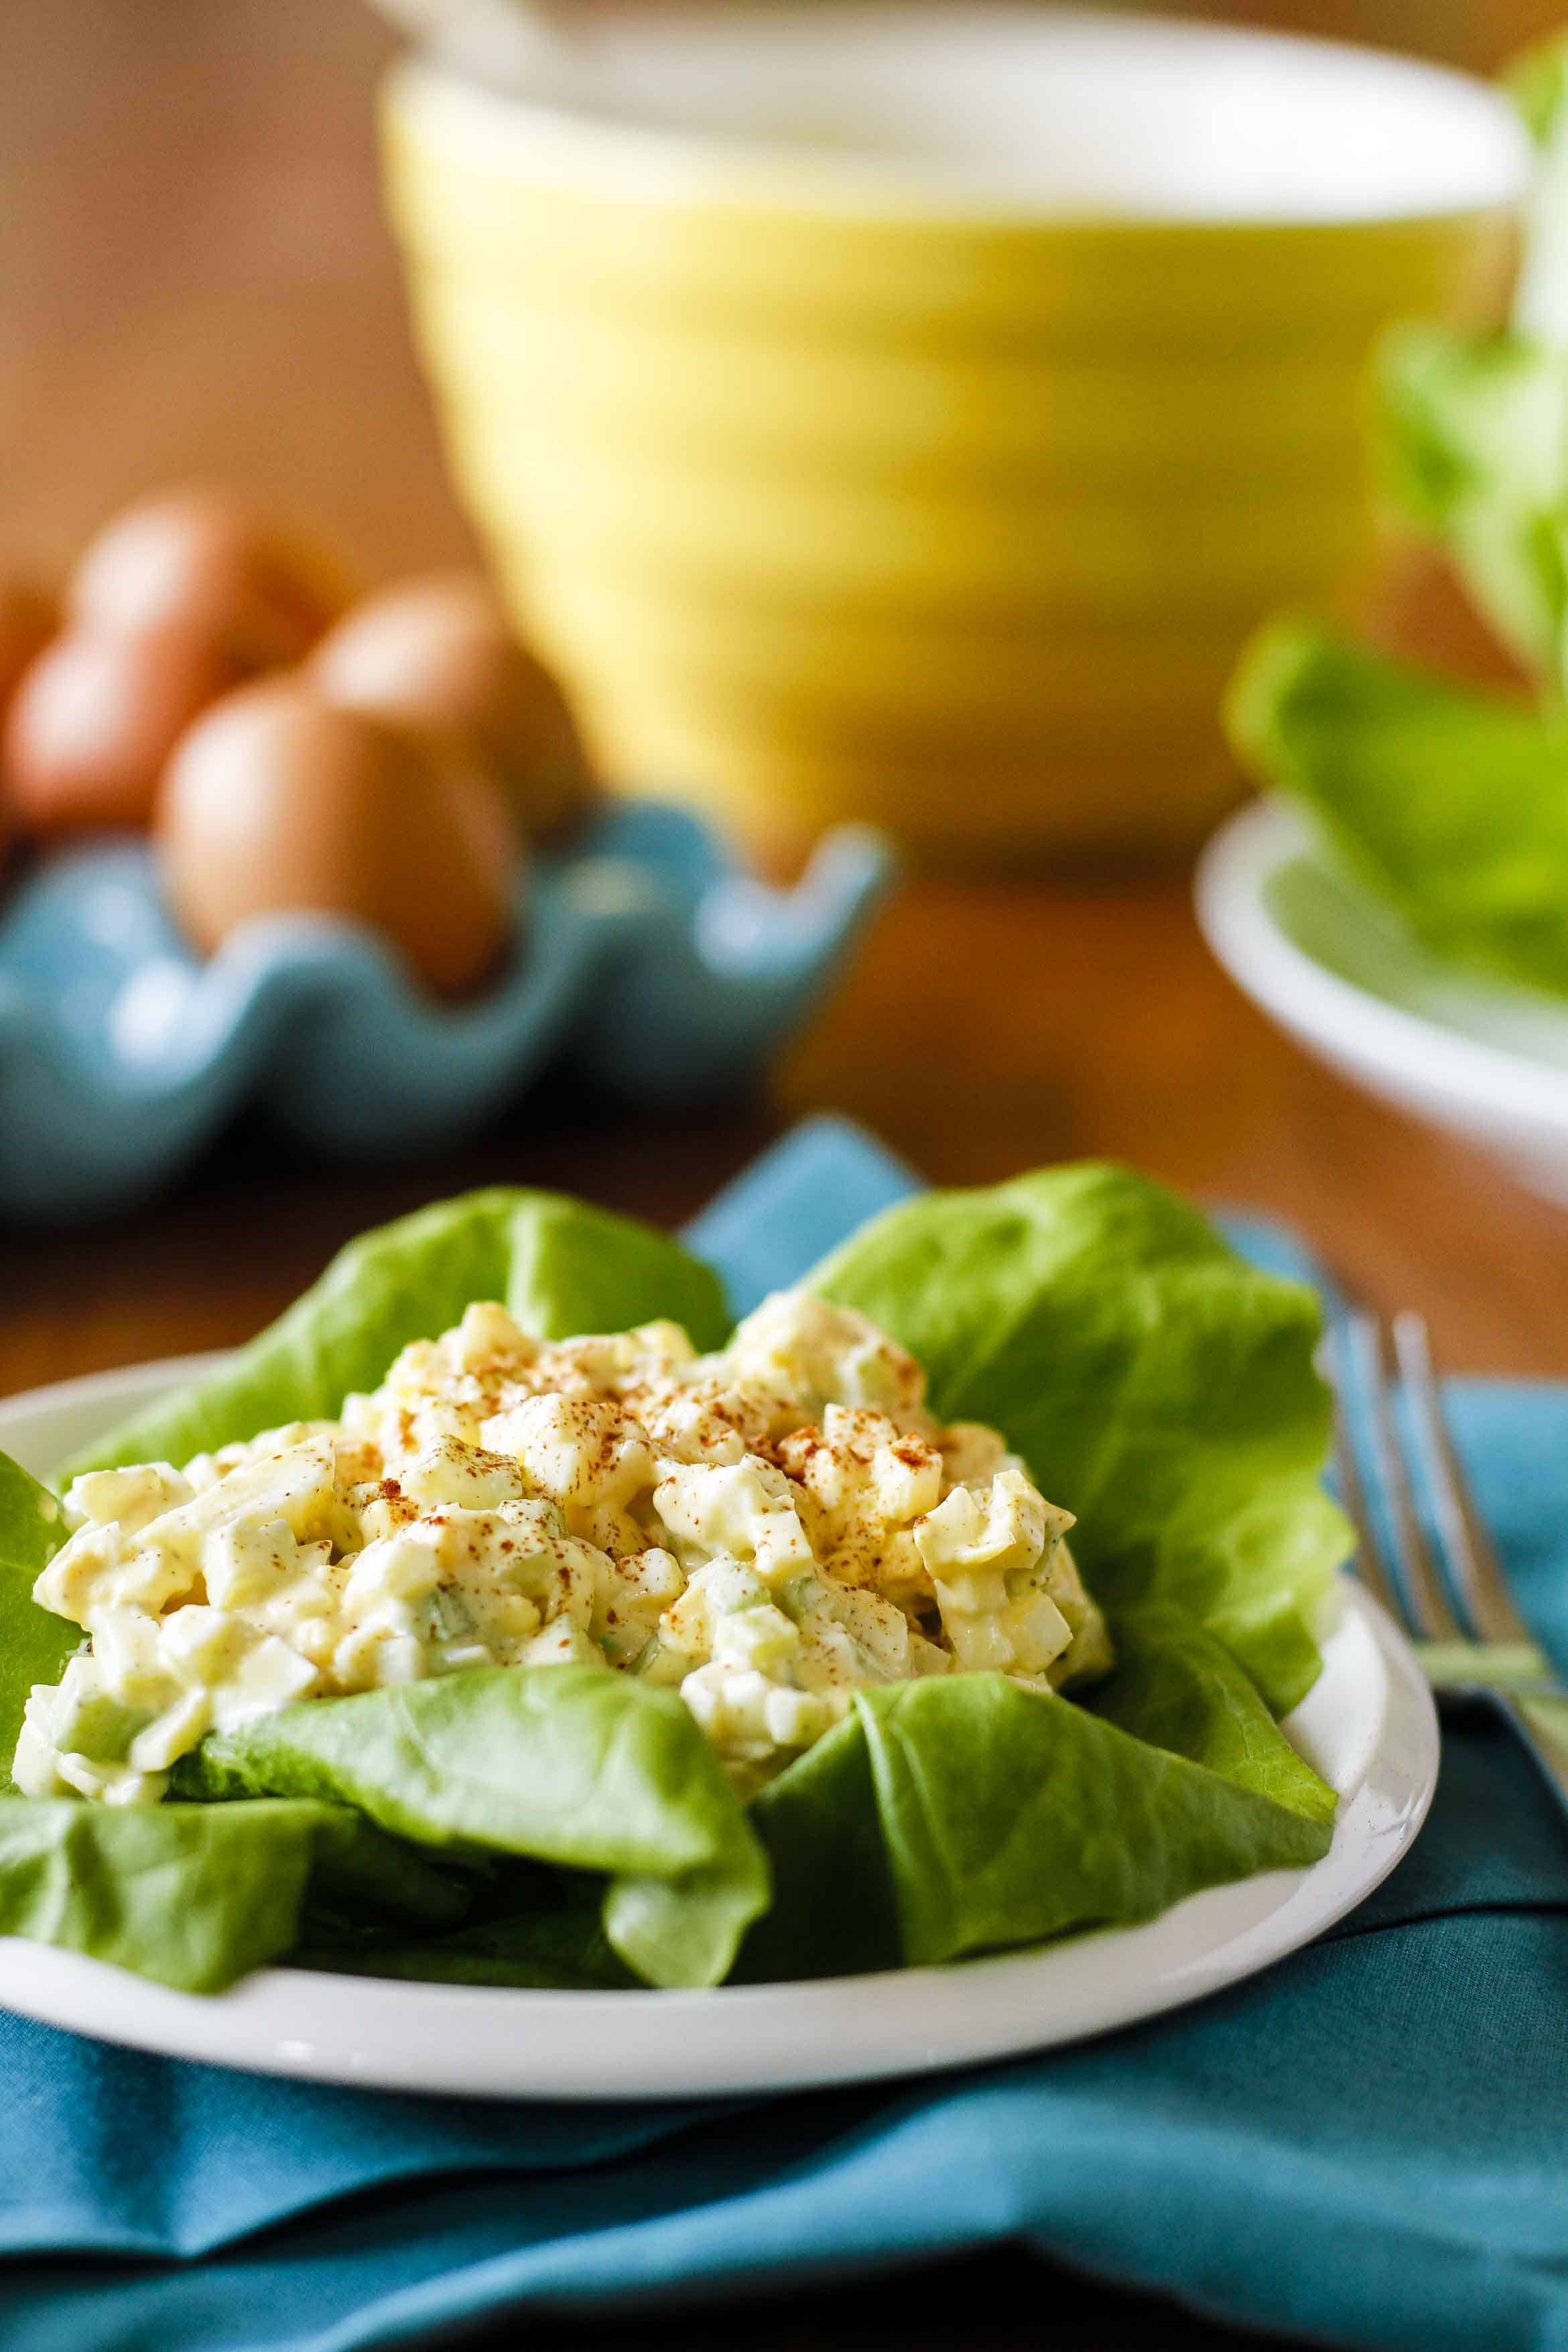 Egg Salad Recipe -- this delicious simple & classic egg salad recipe is the perfect way to use up an overabundance of hard-boiled eggs! | unsophisticook.com